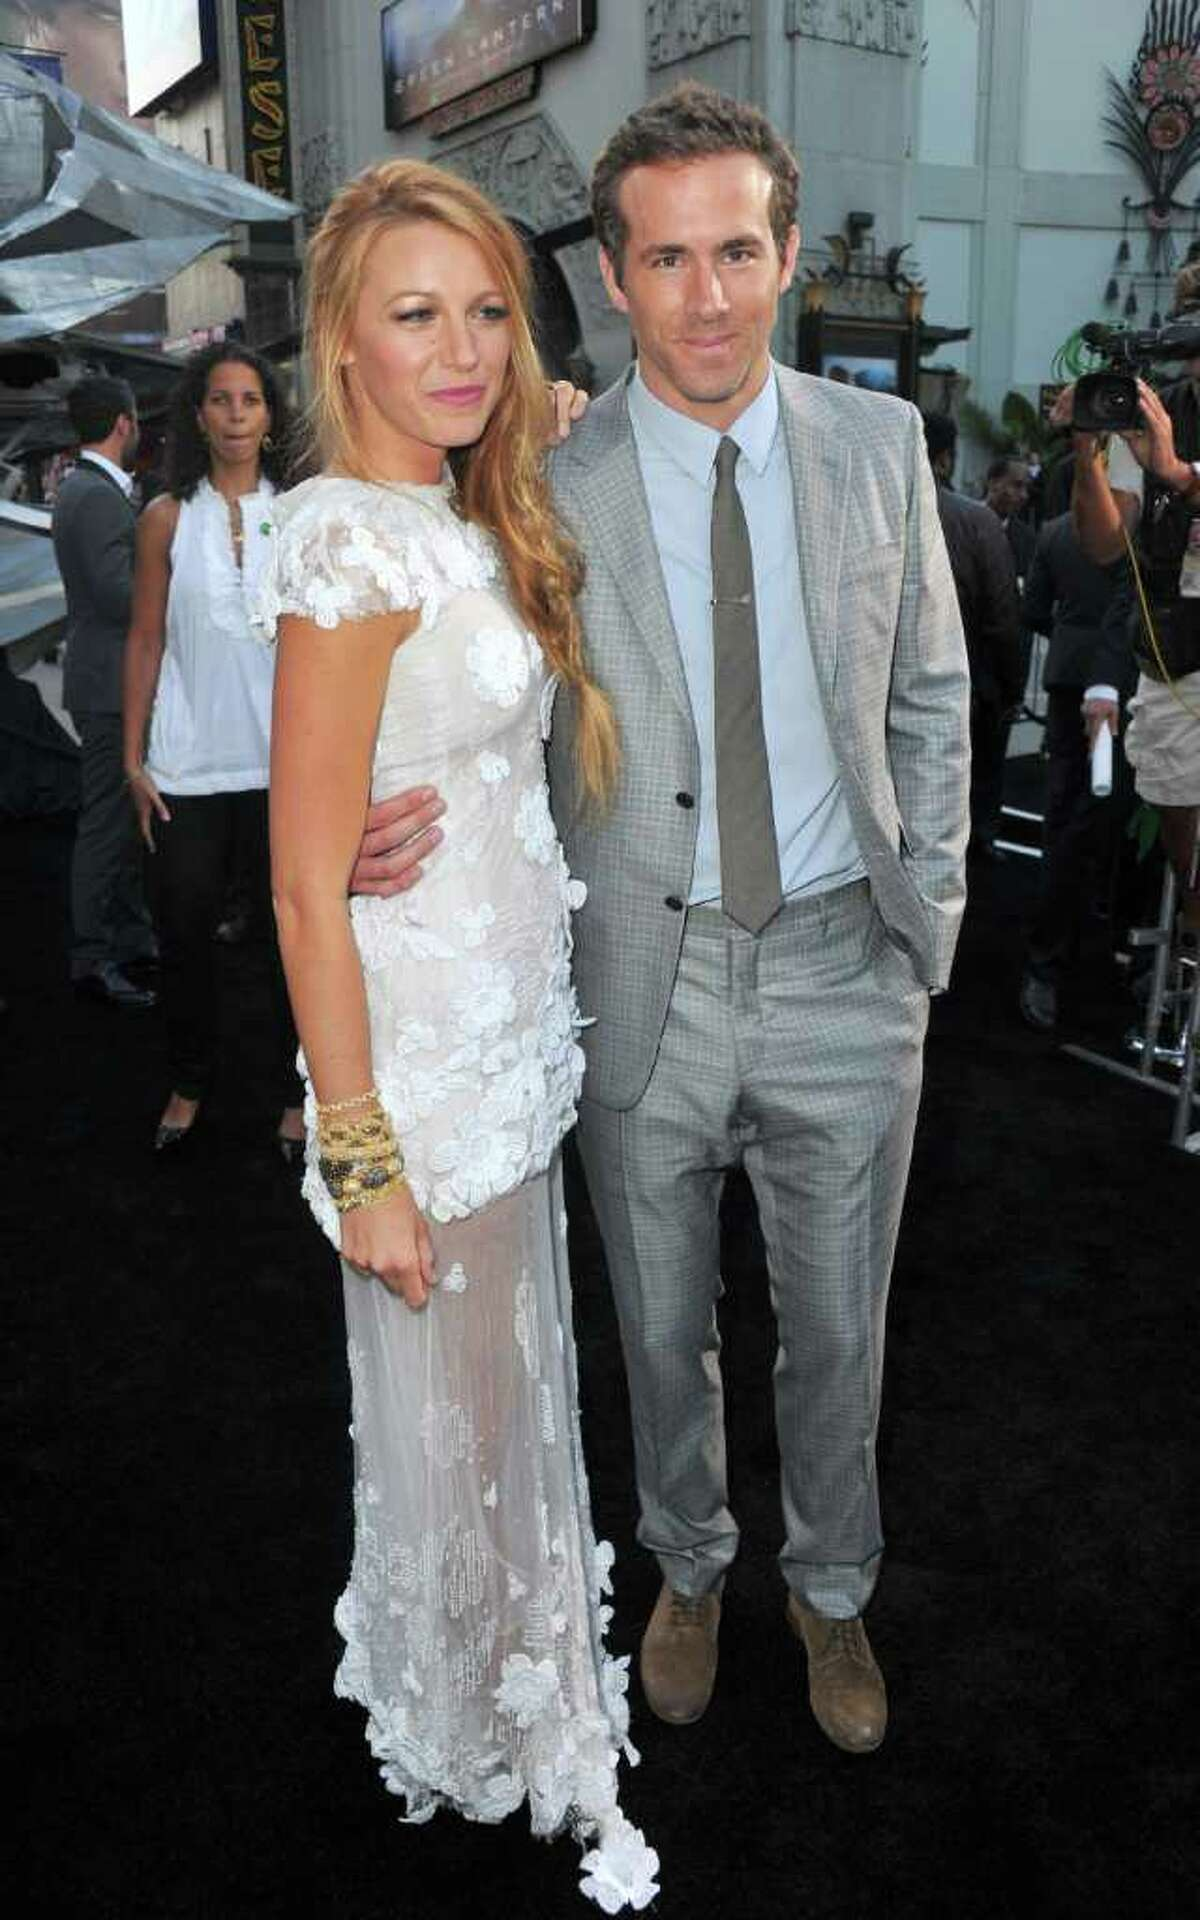 Actors Blake Lively and Ryan Reynolds arrive at the Green Lantern premiere in Hollywood in June. The couple, who are rumored to be ring shopping, were spotted at Doppio in Greenwich last weekend. (Photo by Alberto E. Rodriguez/Getty Images)